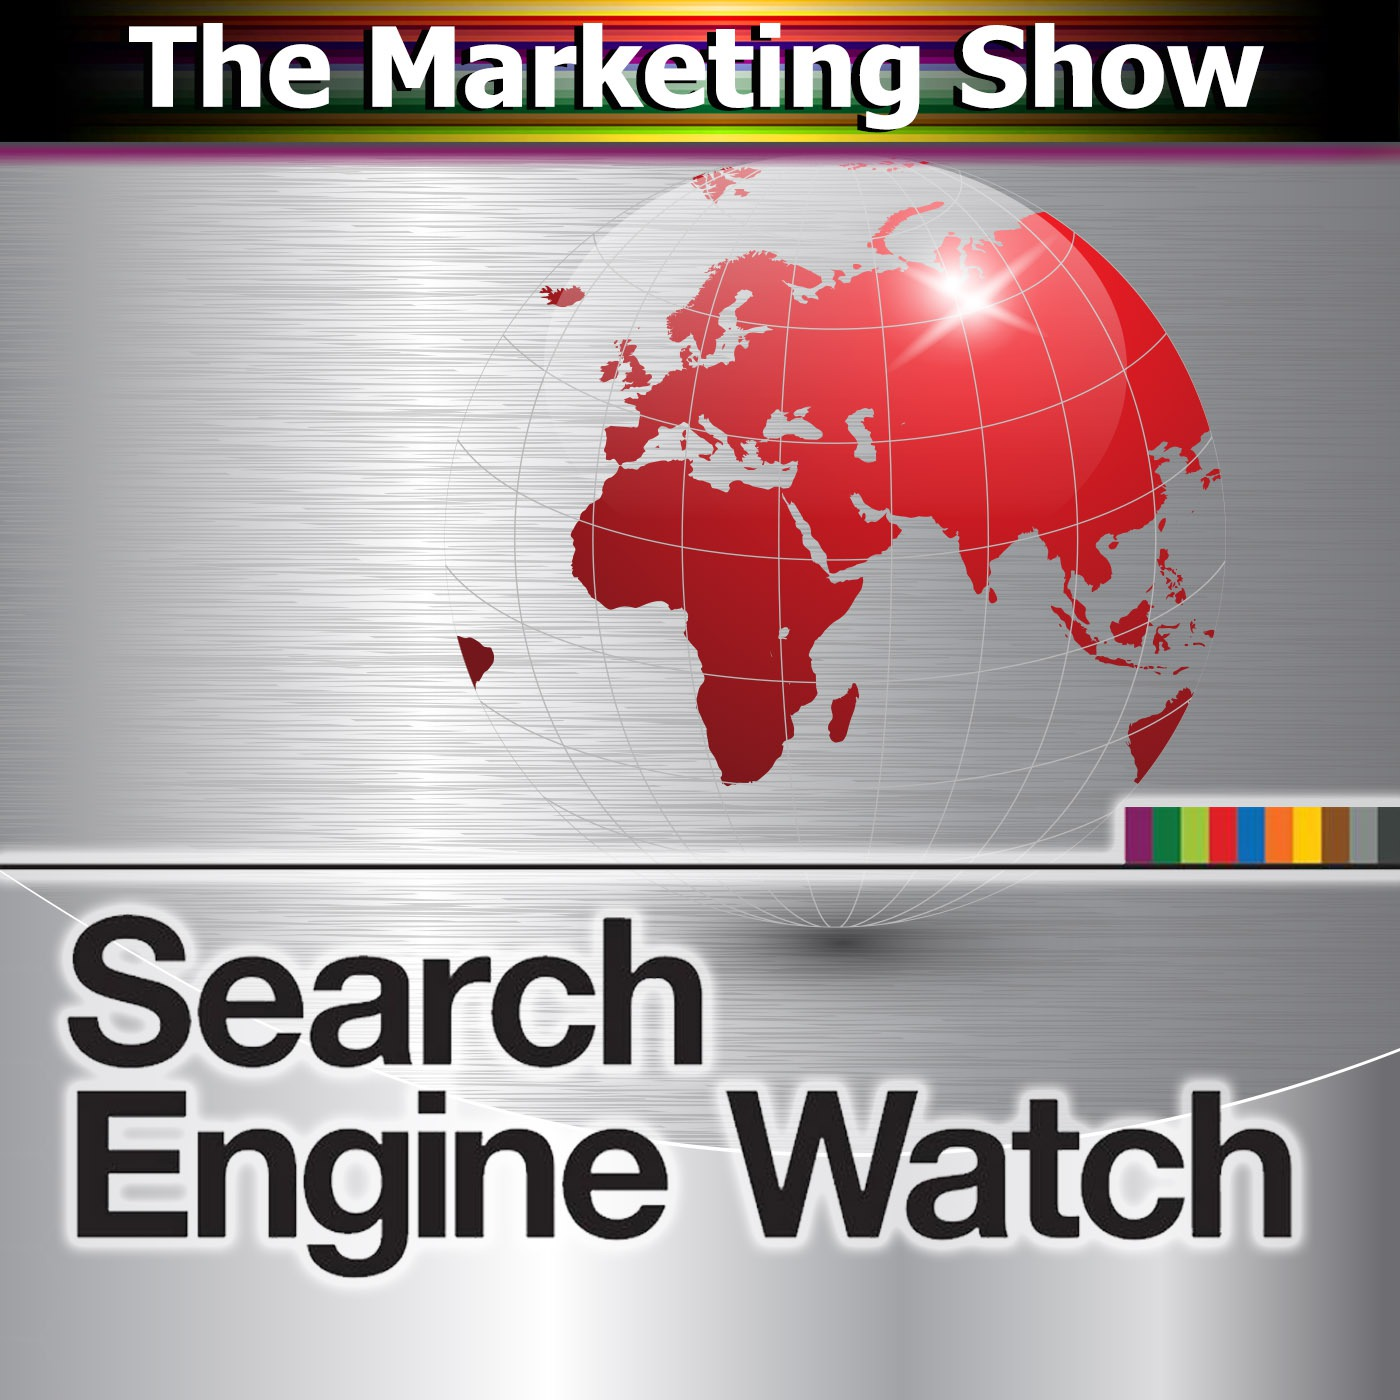 Search Engine Watch Podcast